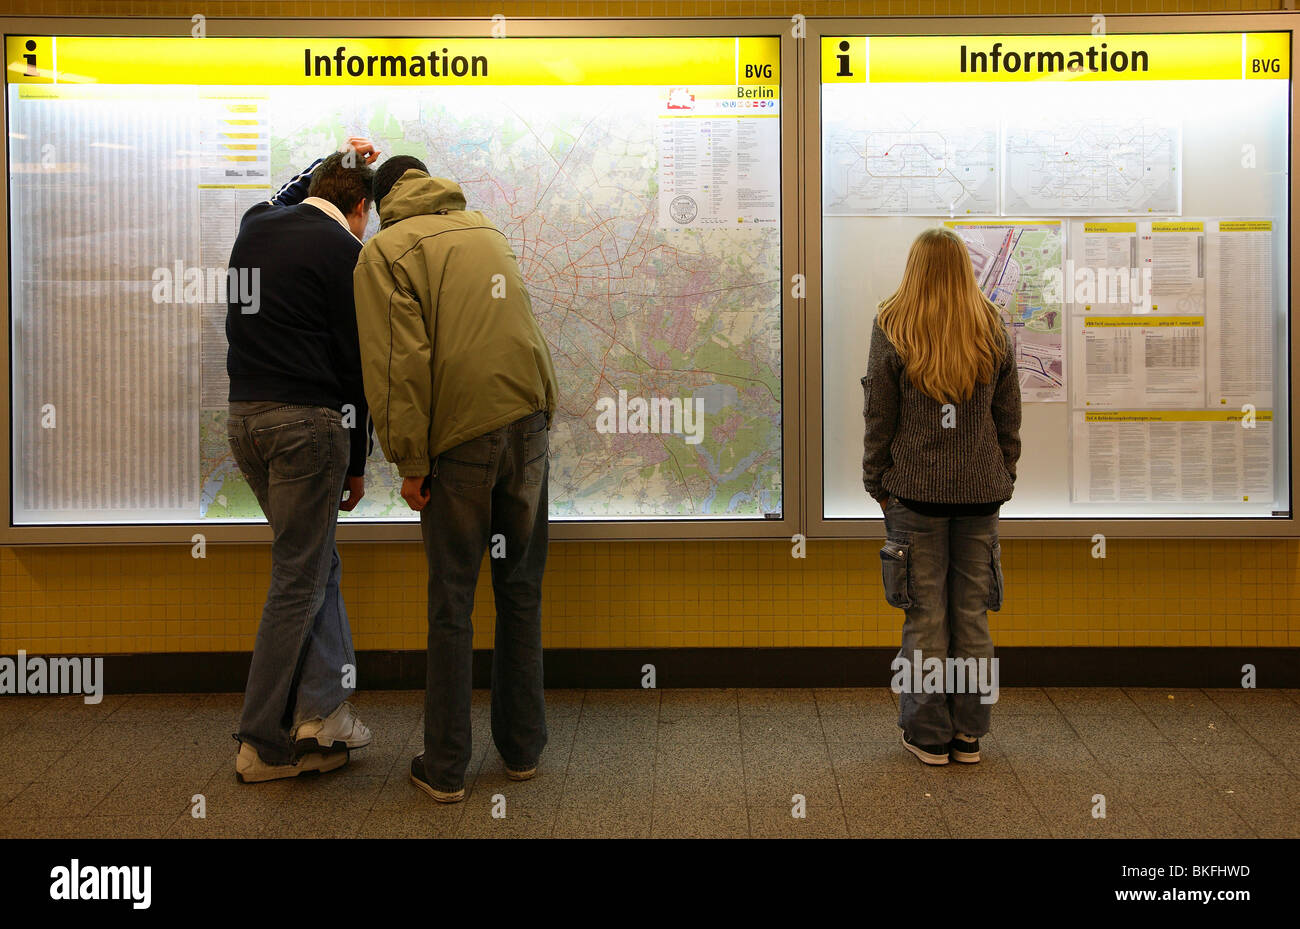 People standing in front of city and underground map, Berlin, Germany Stock Photo